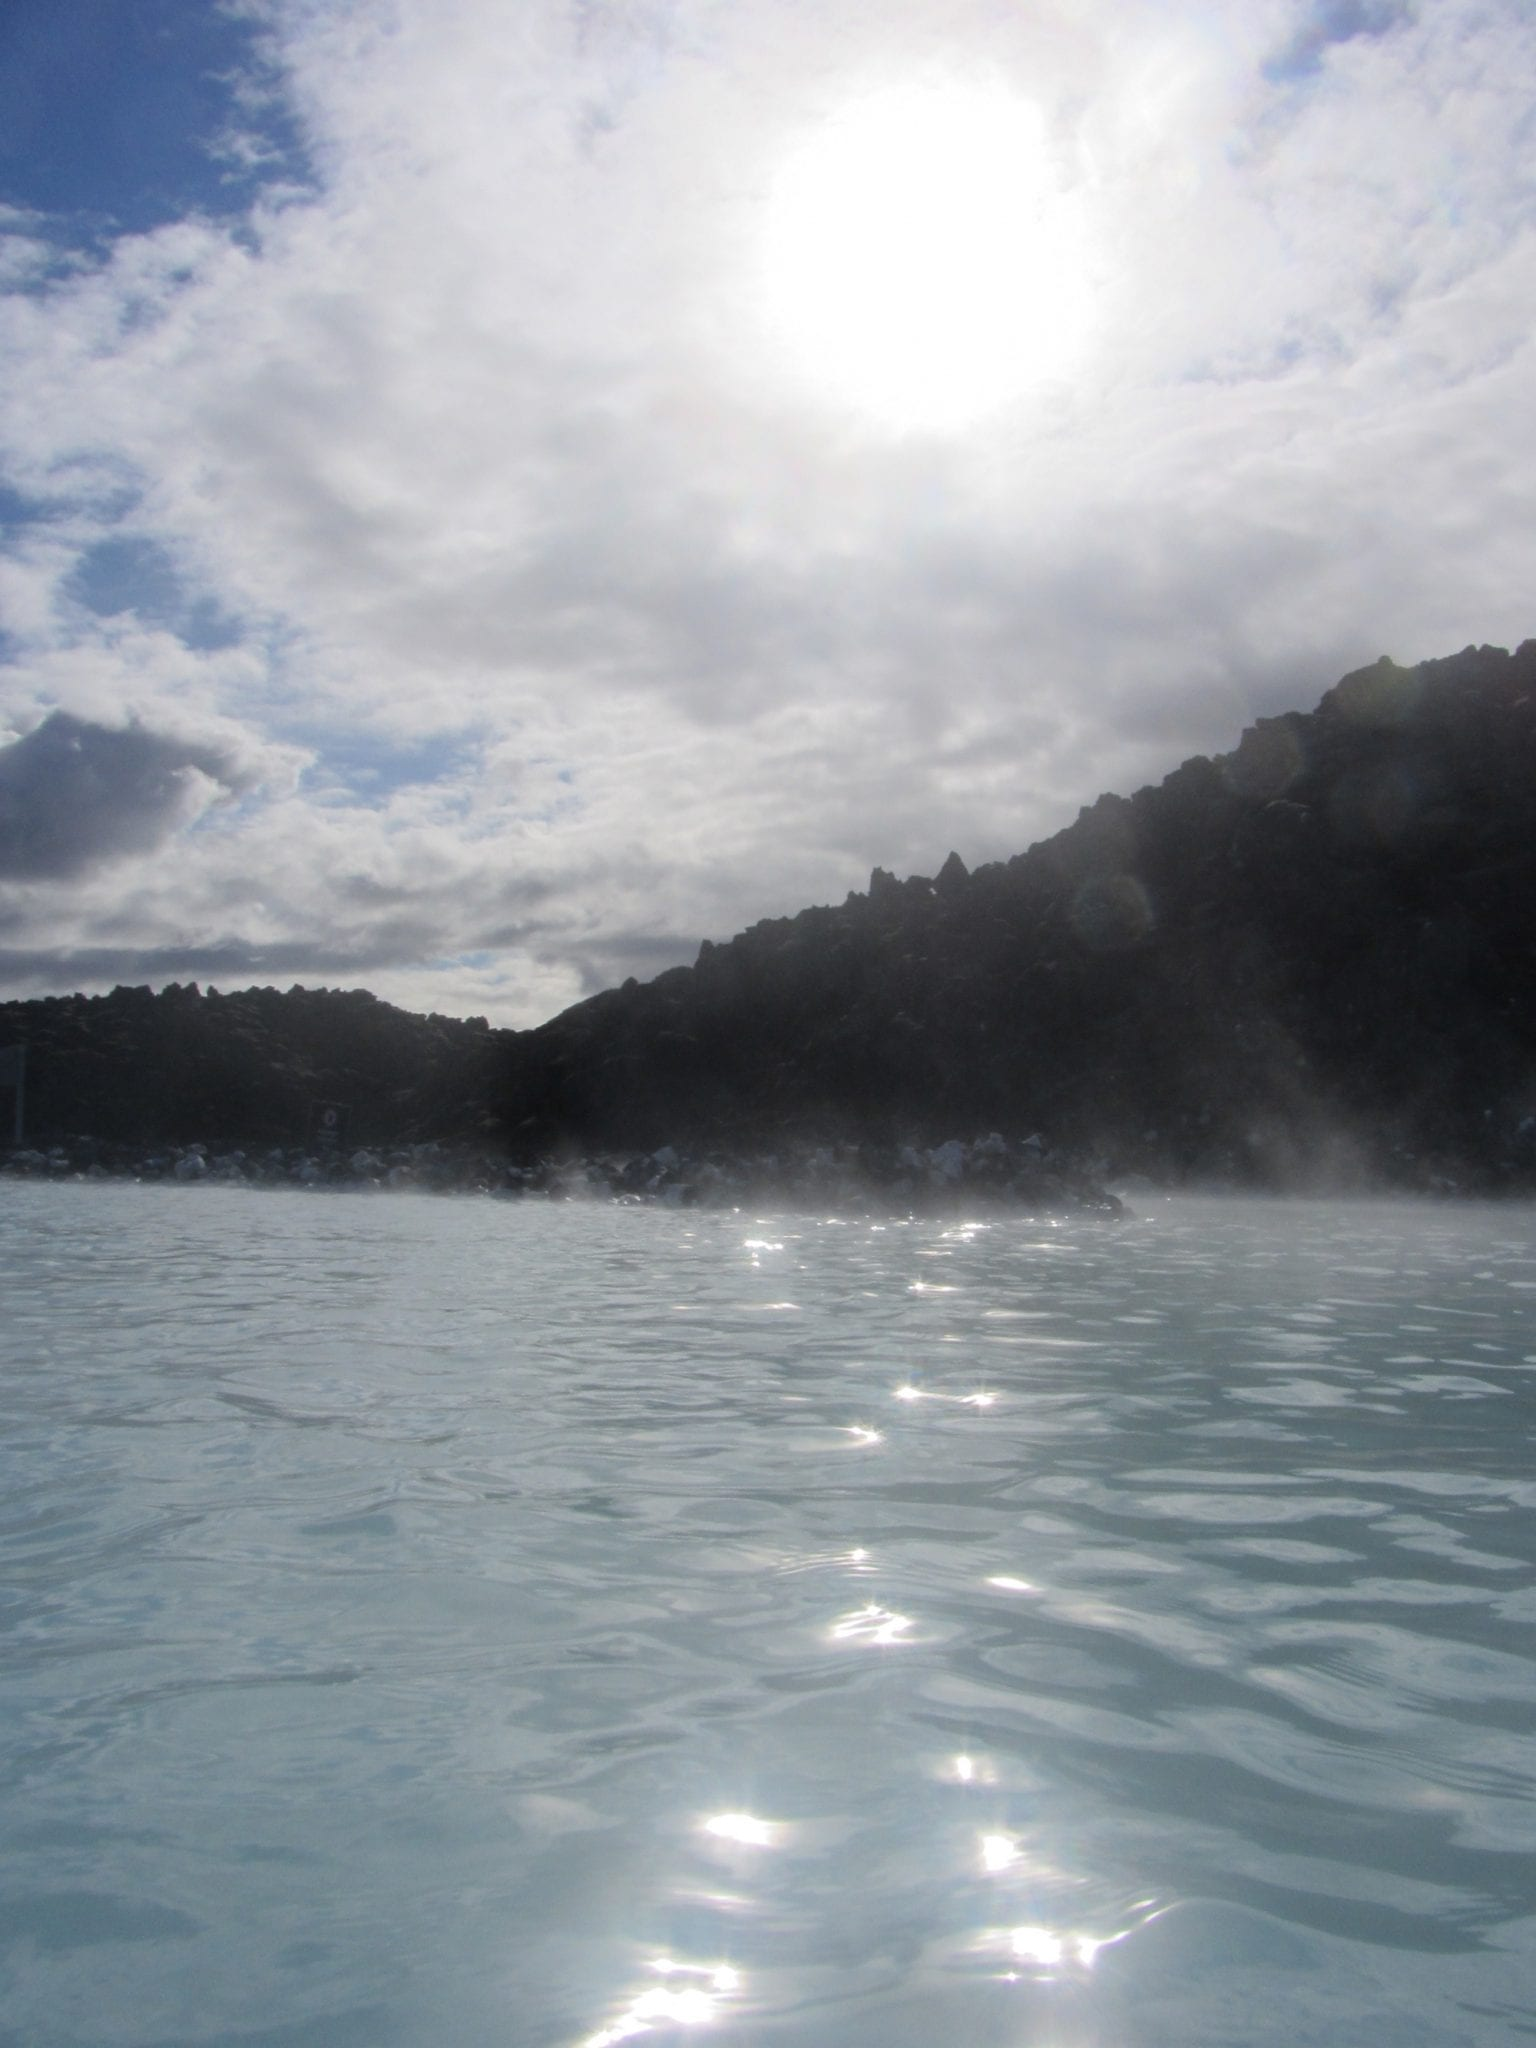 Reykjavik Blue Lagoon Airporttaxitours Is